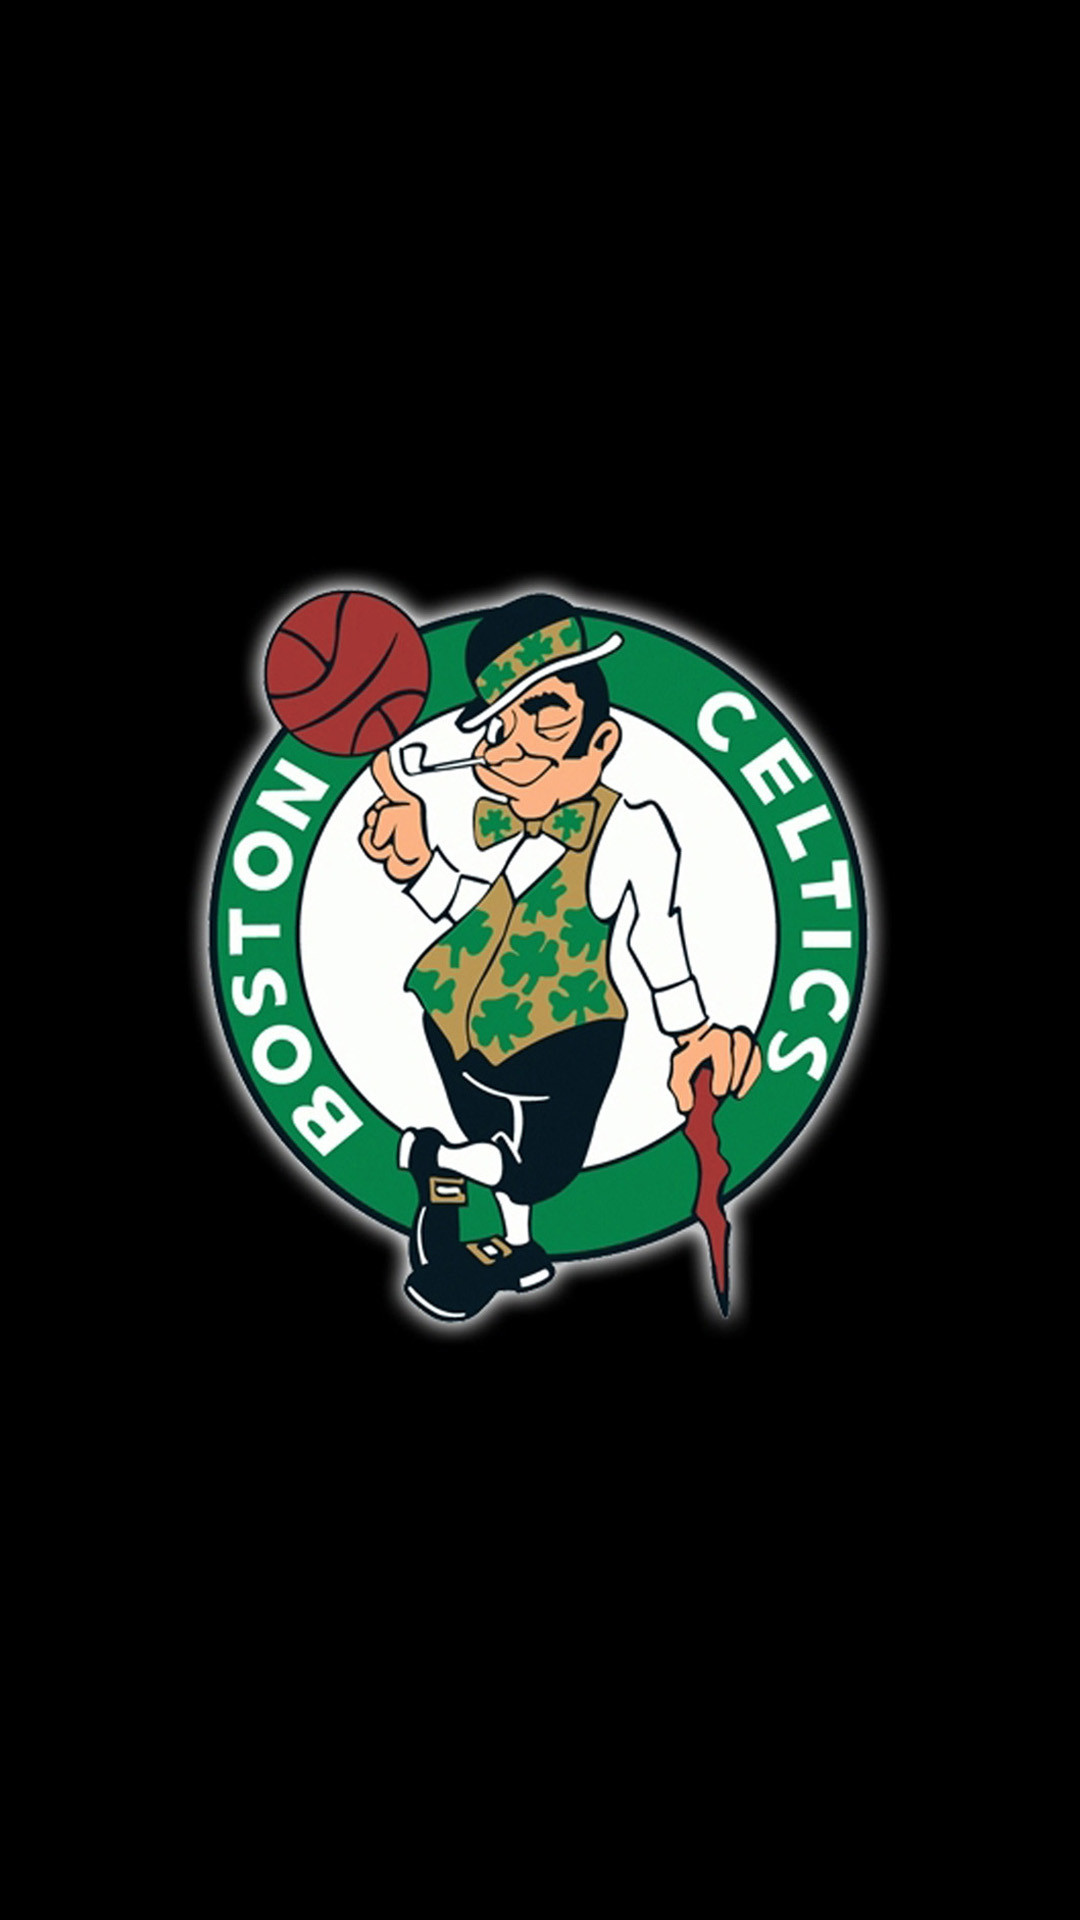 Boston Celtics iPhone Wallpapers (66 Wallpapers)